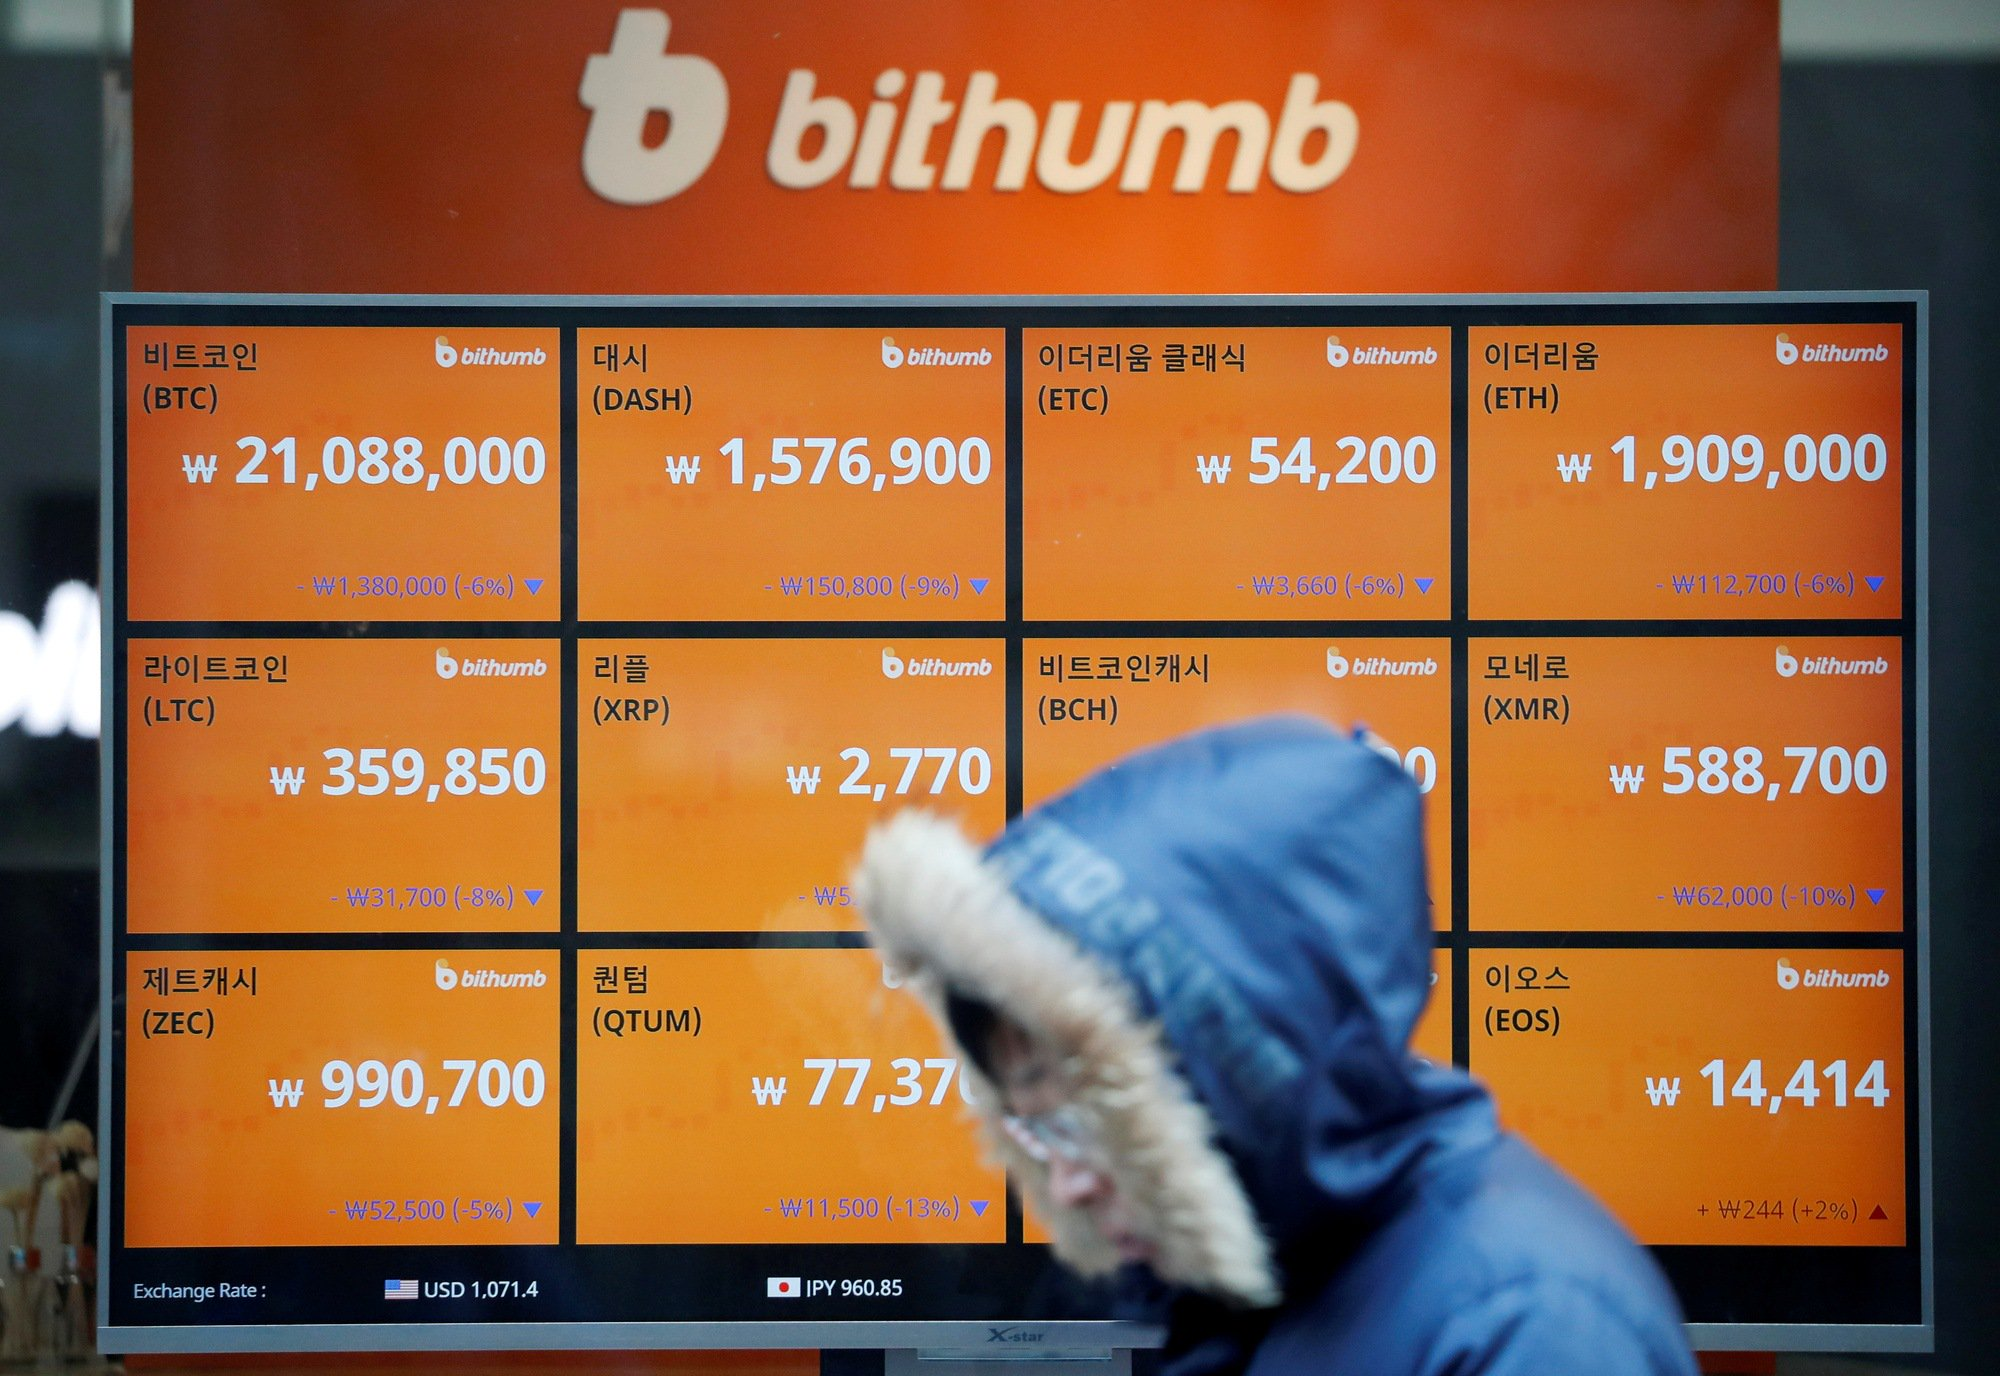 $20 Million Bithumb Hack Exposes Alarming Threat to Bitcoin Exchanges